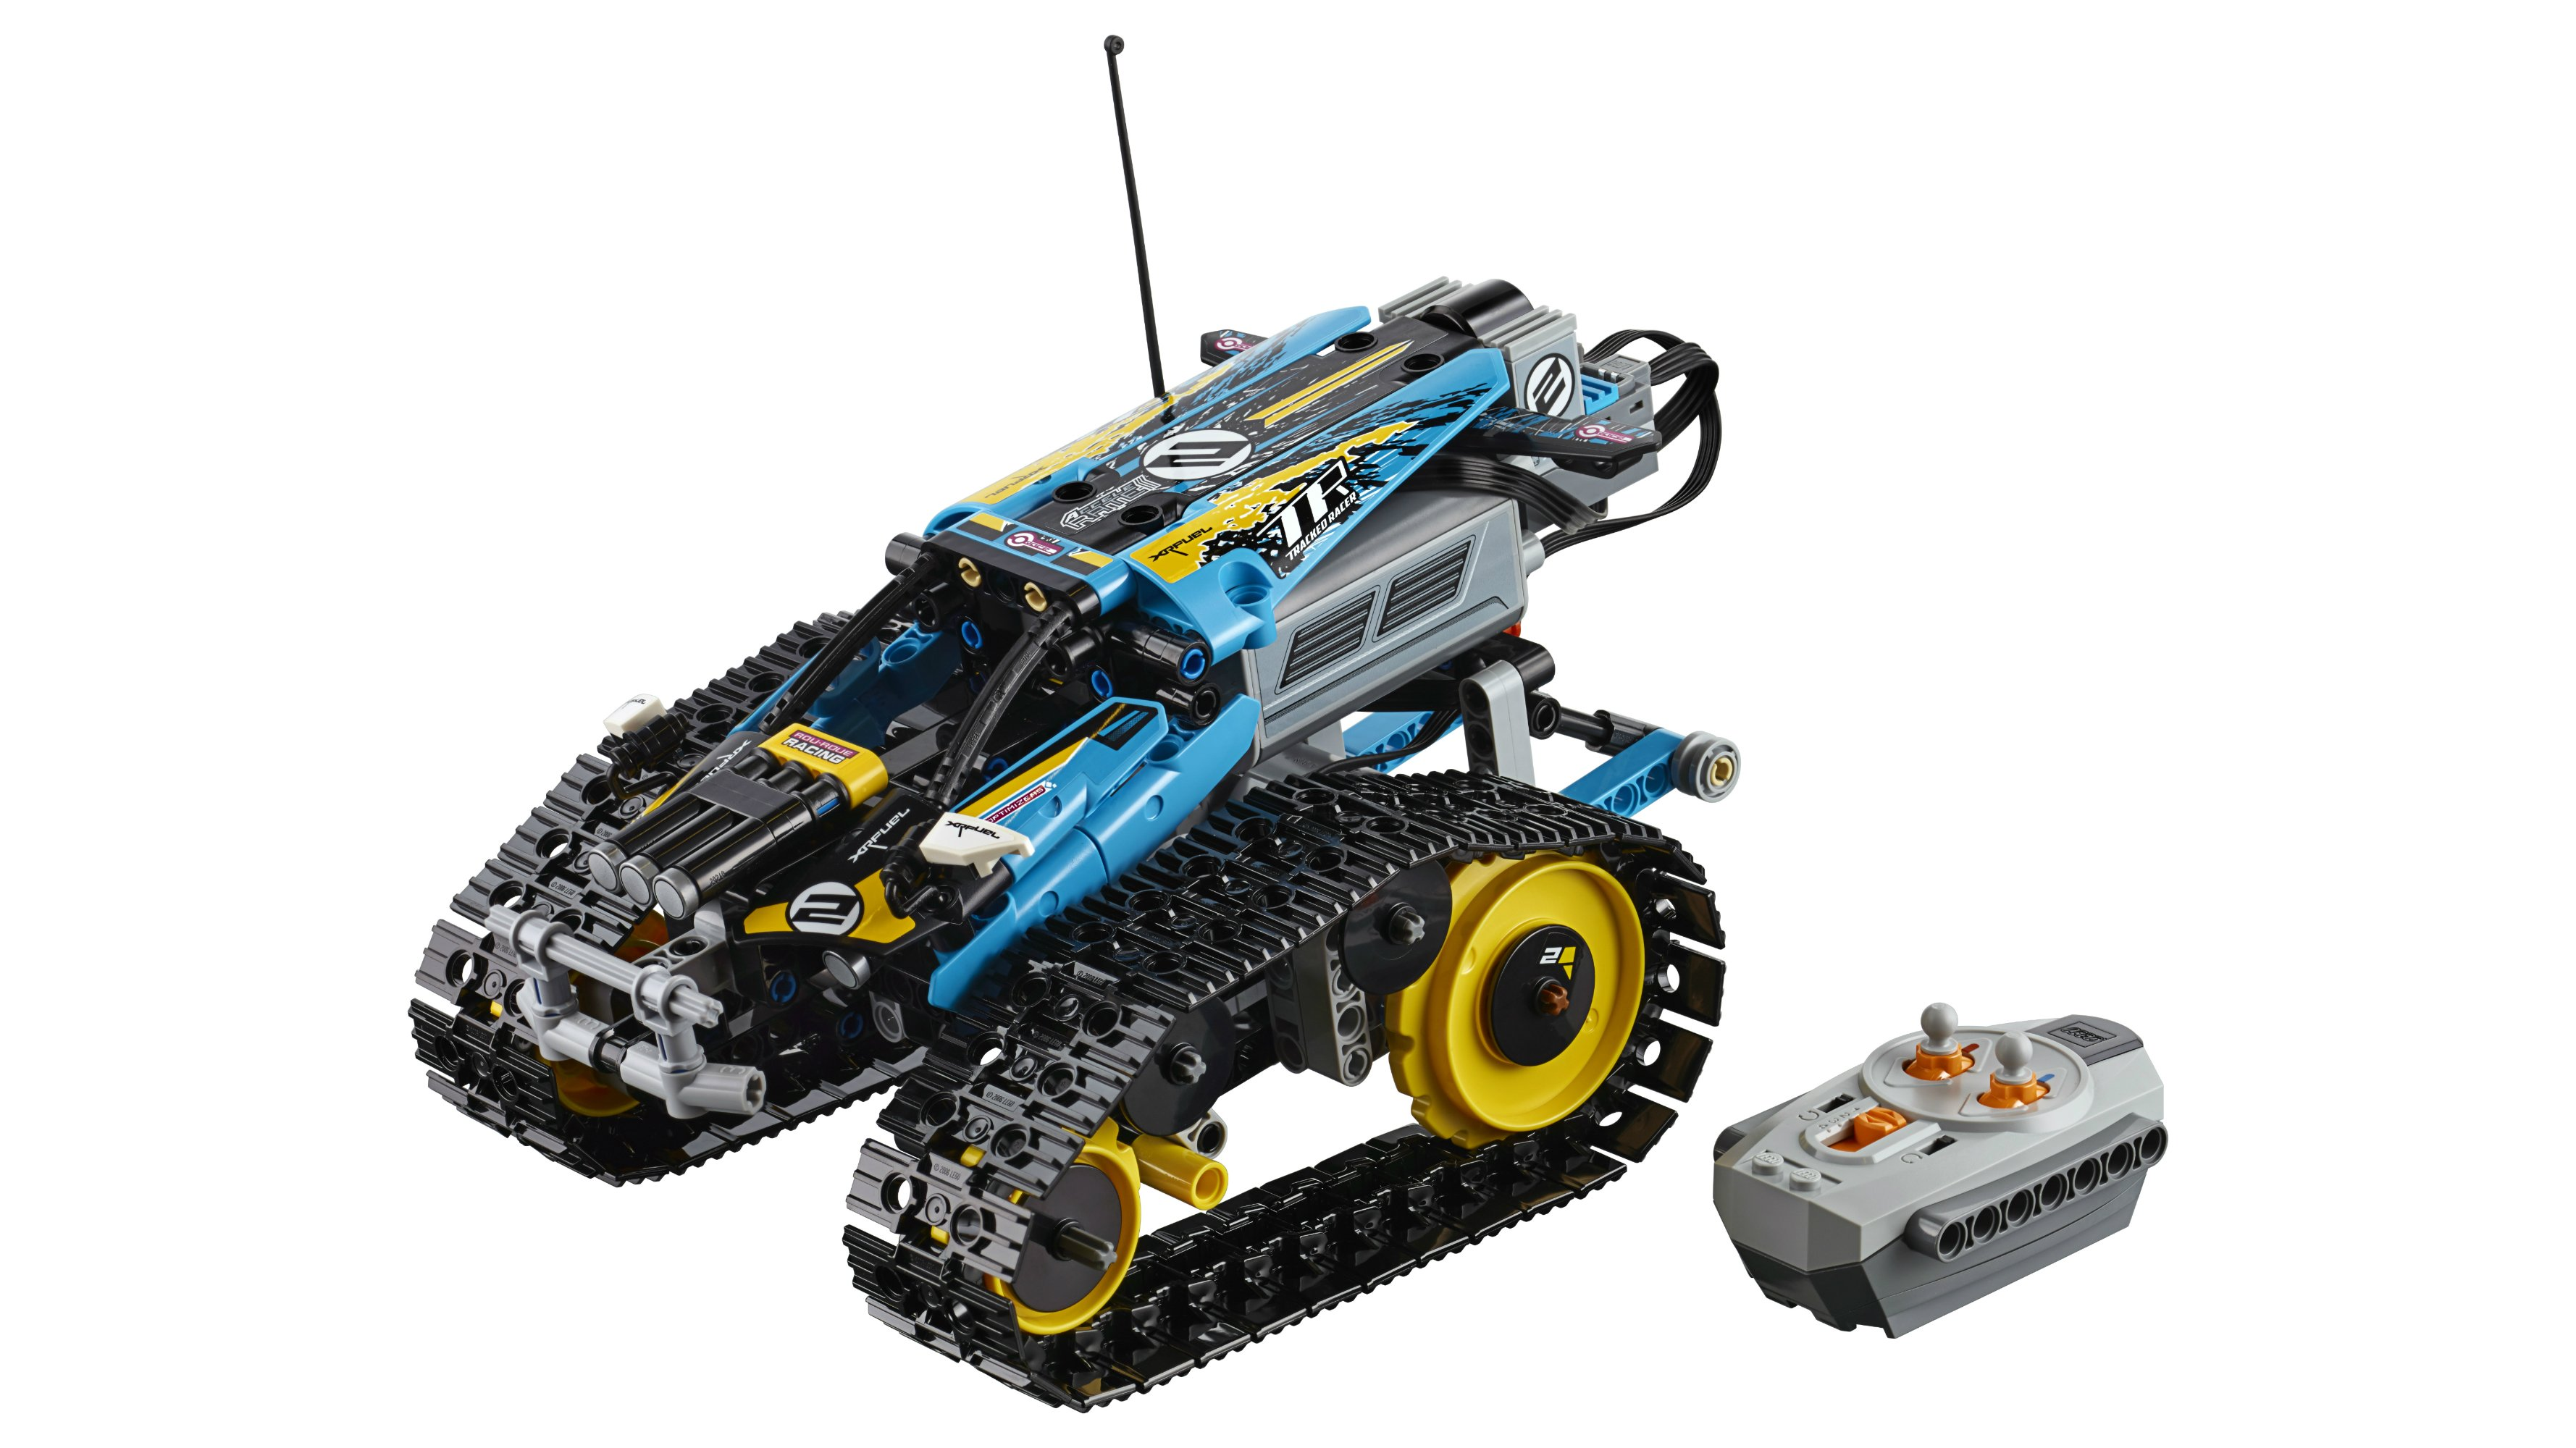 Best Toys 2019 The Best Toys For 4-Year-Olds, 5-Year-Olds -8239